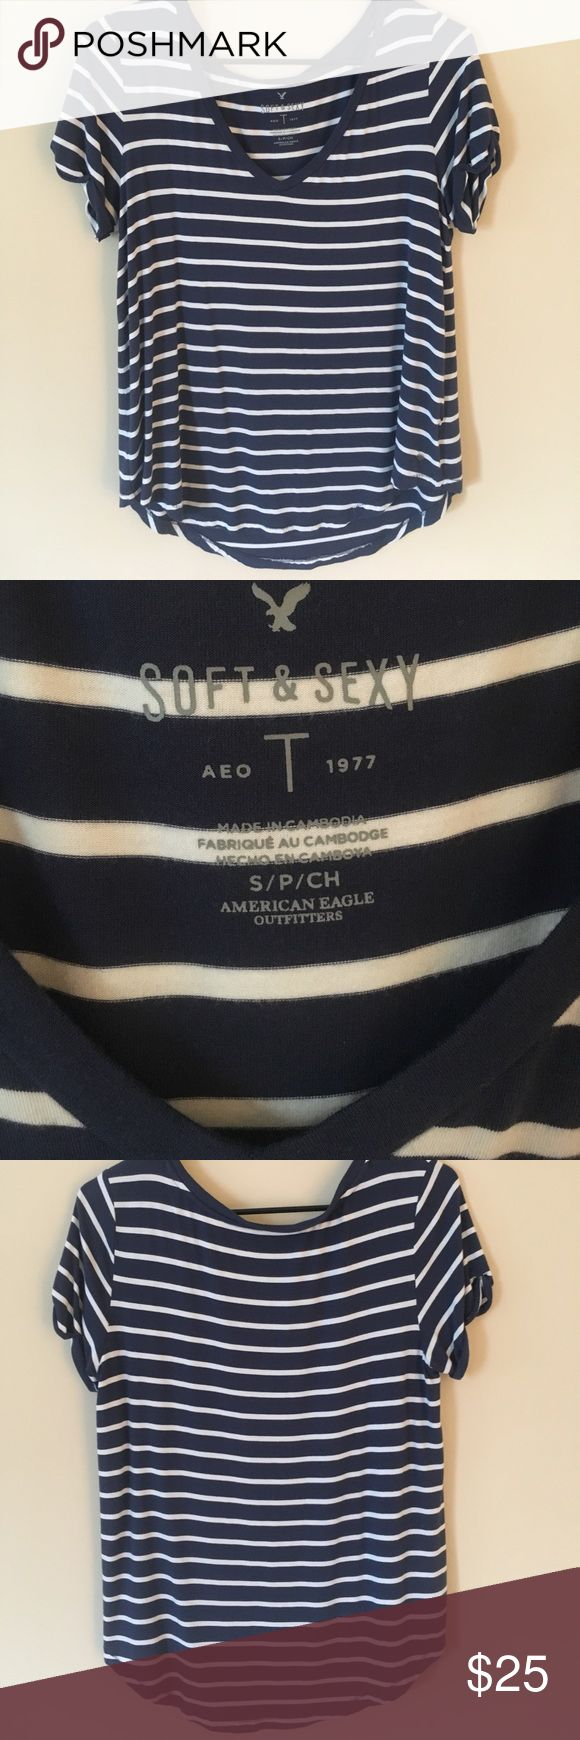 American Eagle Outfitters V-Neck Boyfriend Shirt BRAND NEW; only worn ONCE; American Eagle v-neck t shirt; size small; navy blue and white American Eagle Outfitters Tops Tees - Short Sleeve